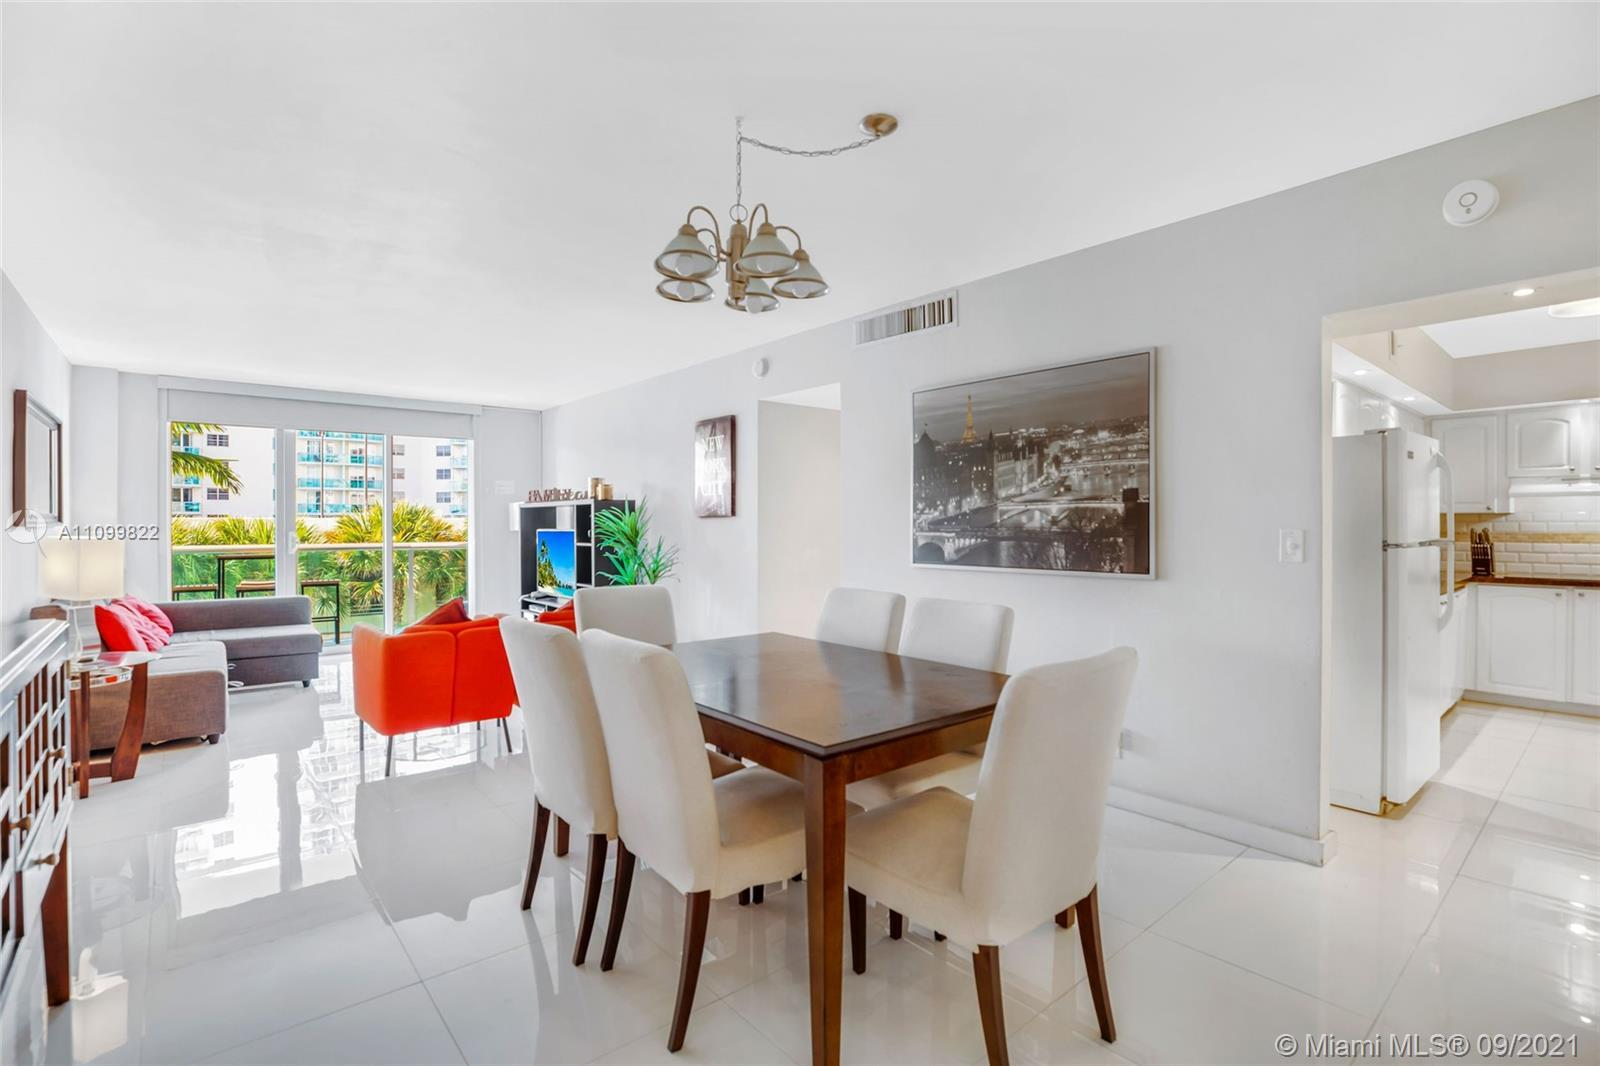 ** INVESTOR'S GREATEST OPPORTUNITY HAS COME TO MARKET! ** ENJOY THE SOUTH FLORIDA LIFESTYLE IN THIS